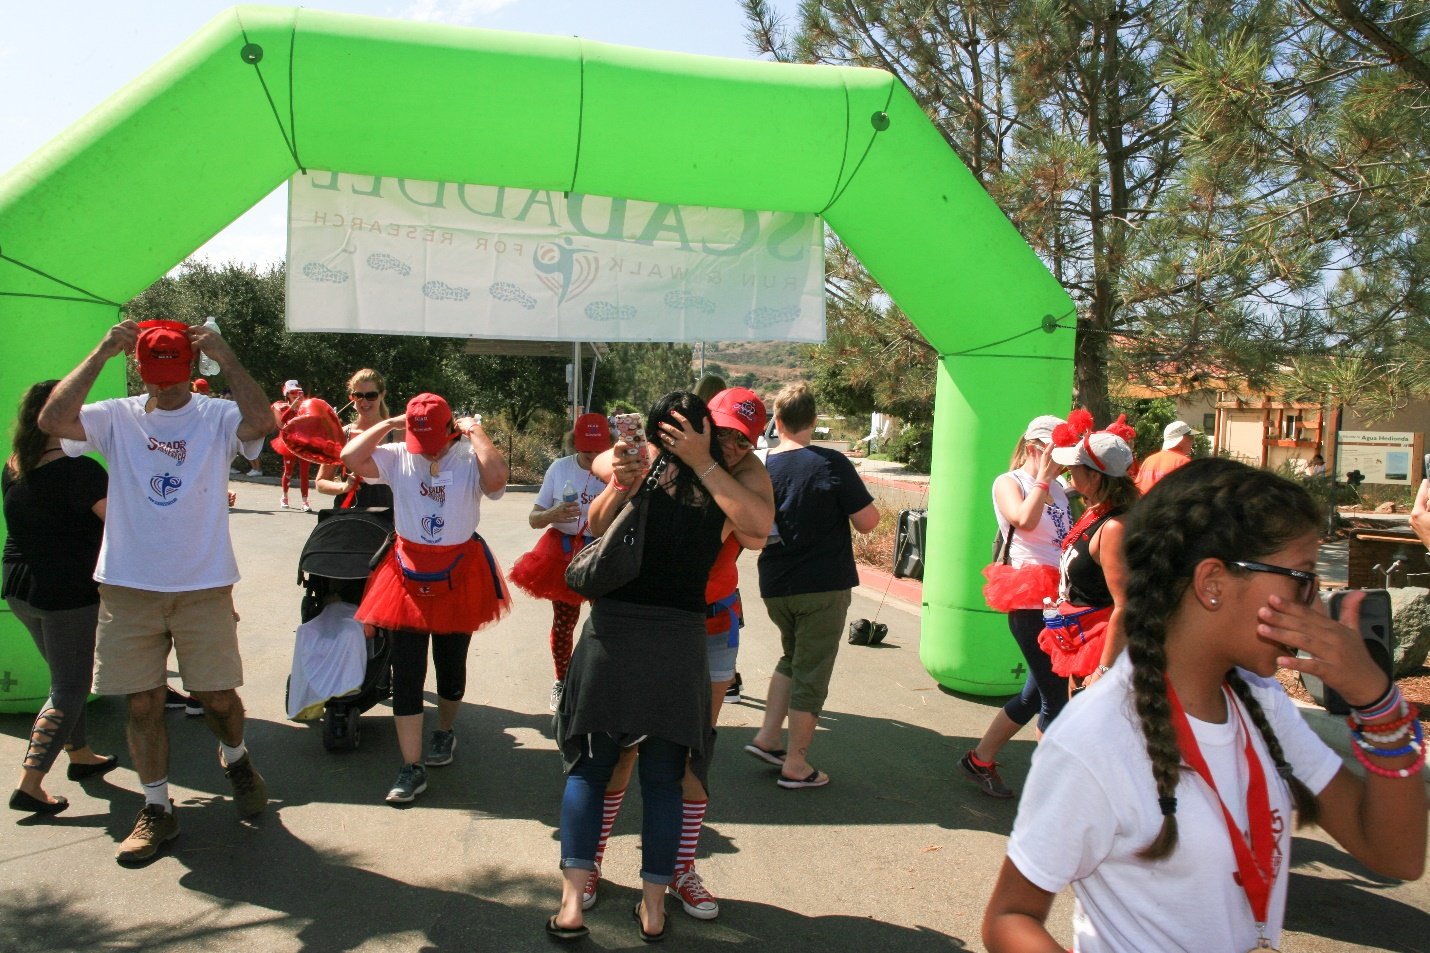 2017 West Coast SCADaddle crossing finish line